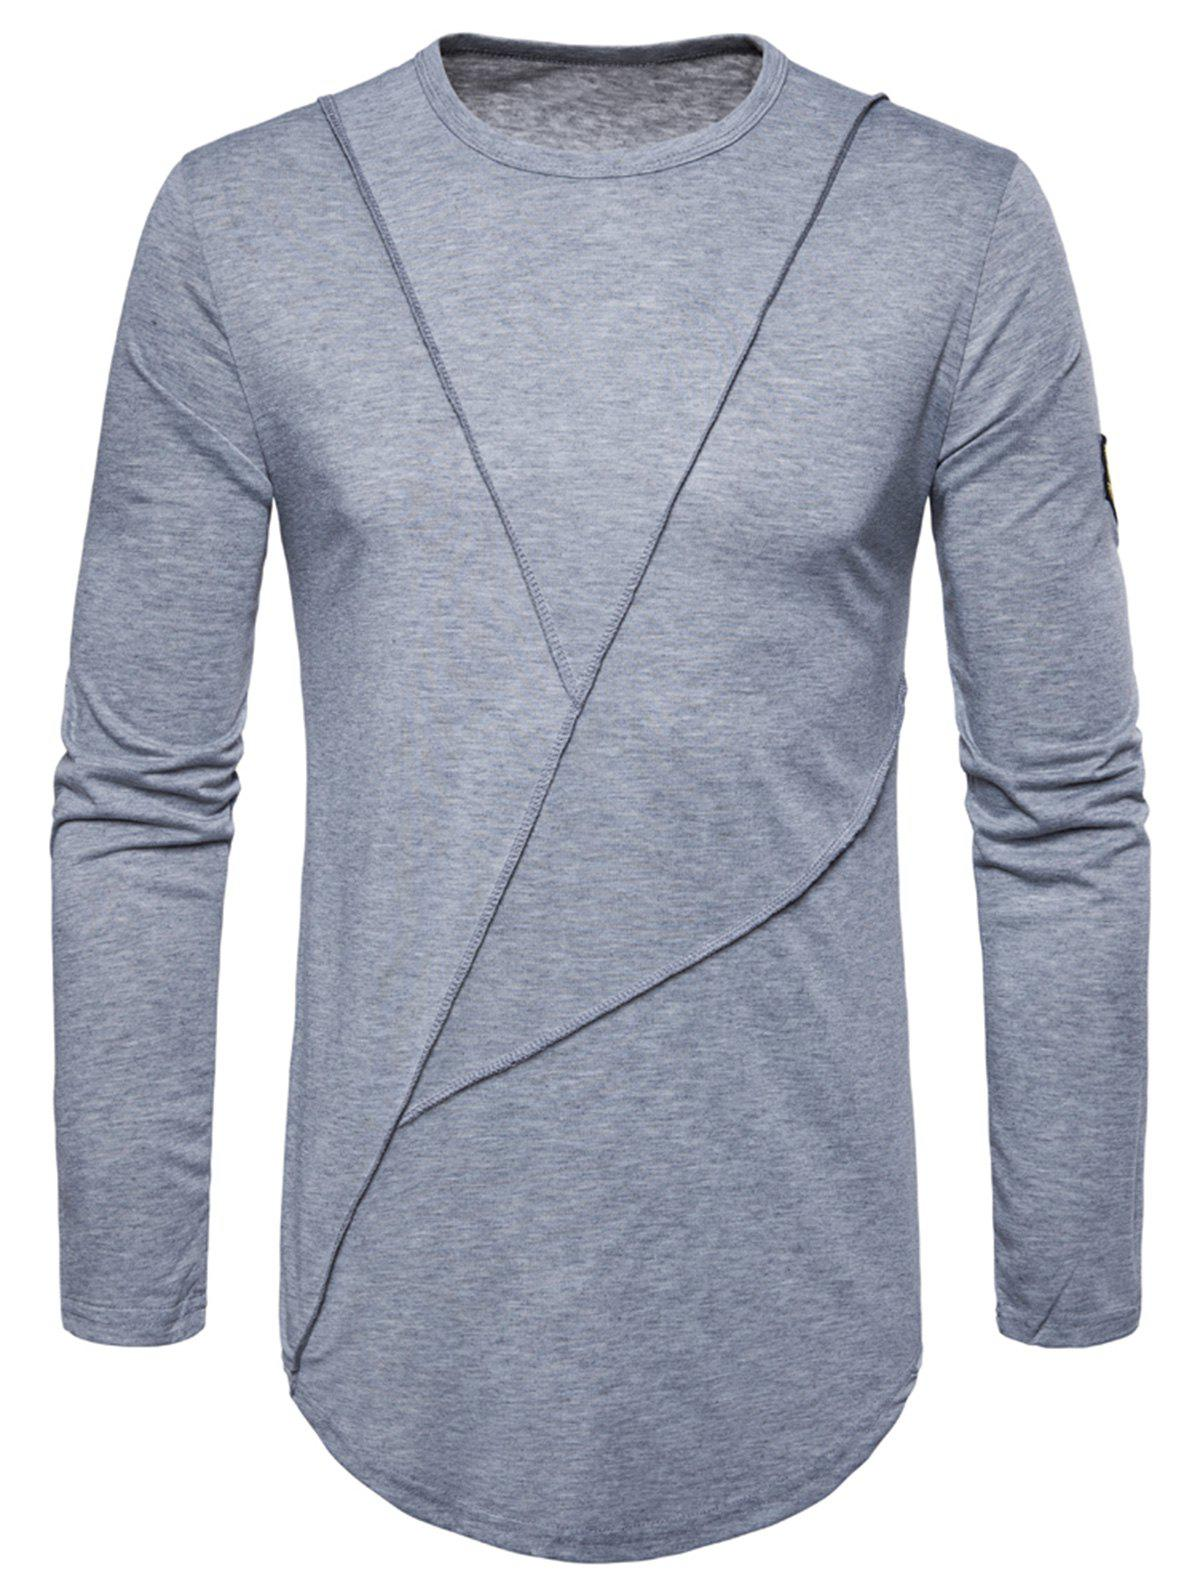 Buy Embroidered Arrow Curved Hem Crew Necklace T-shirt